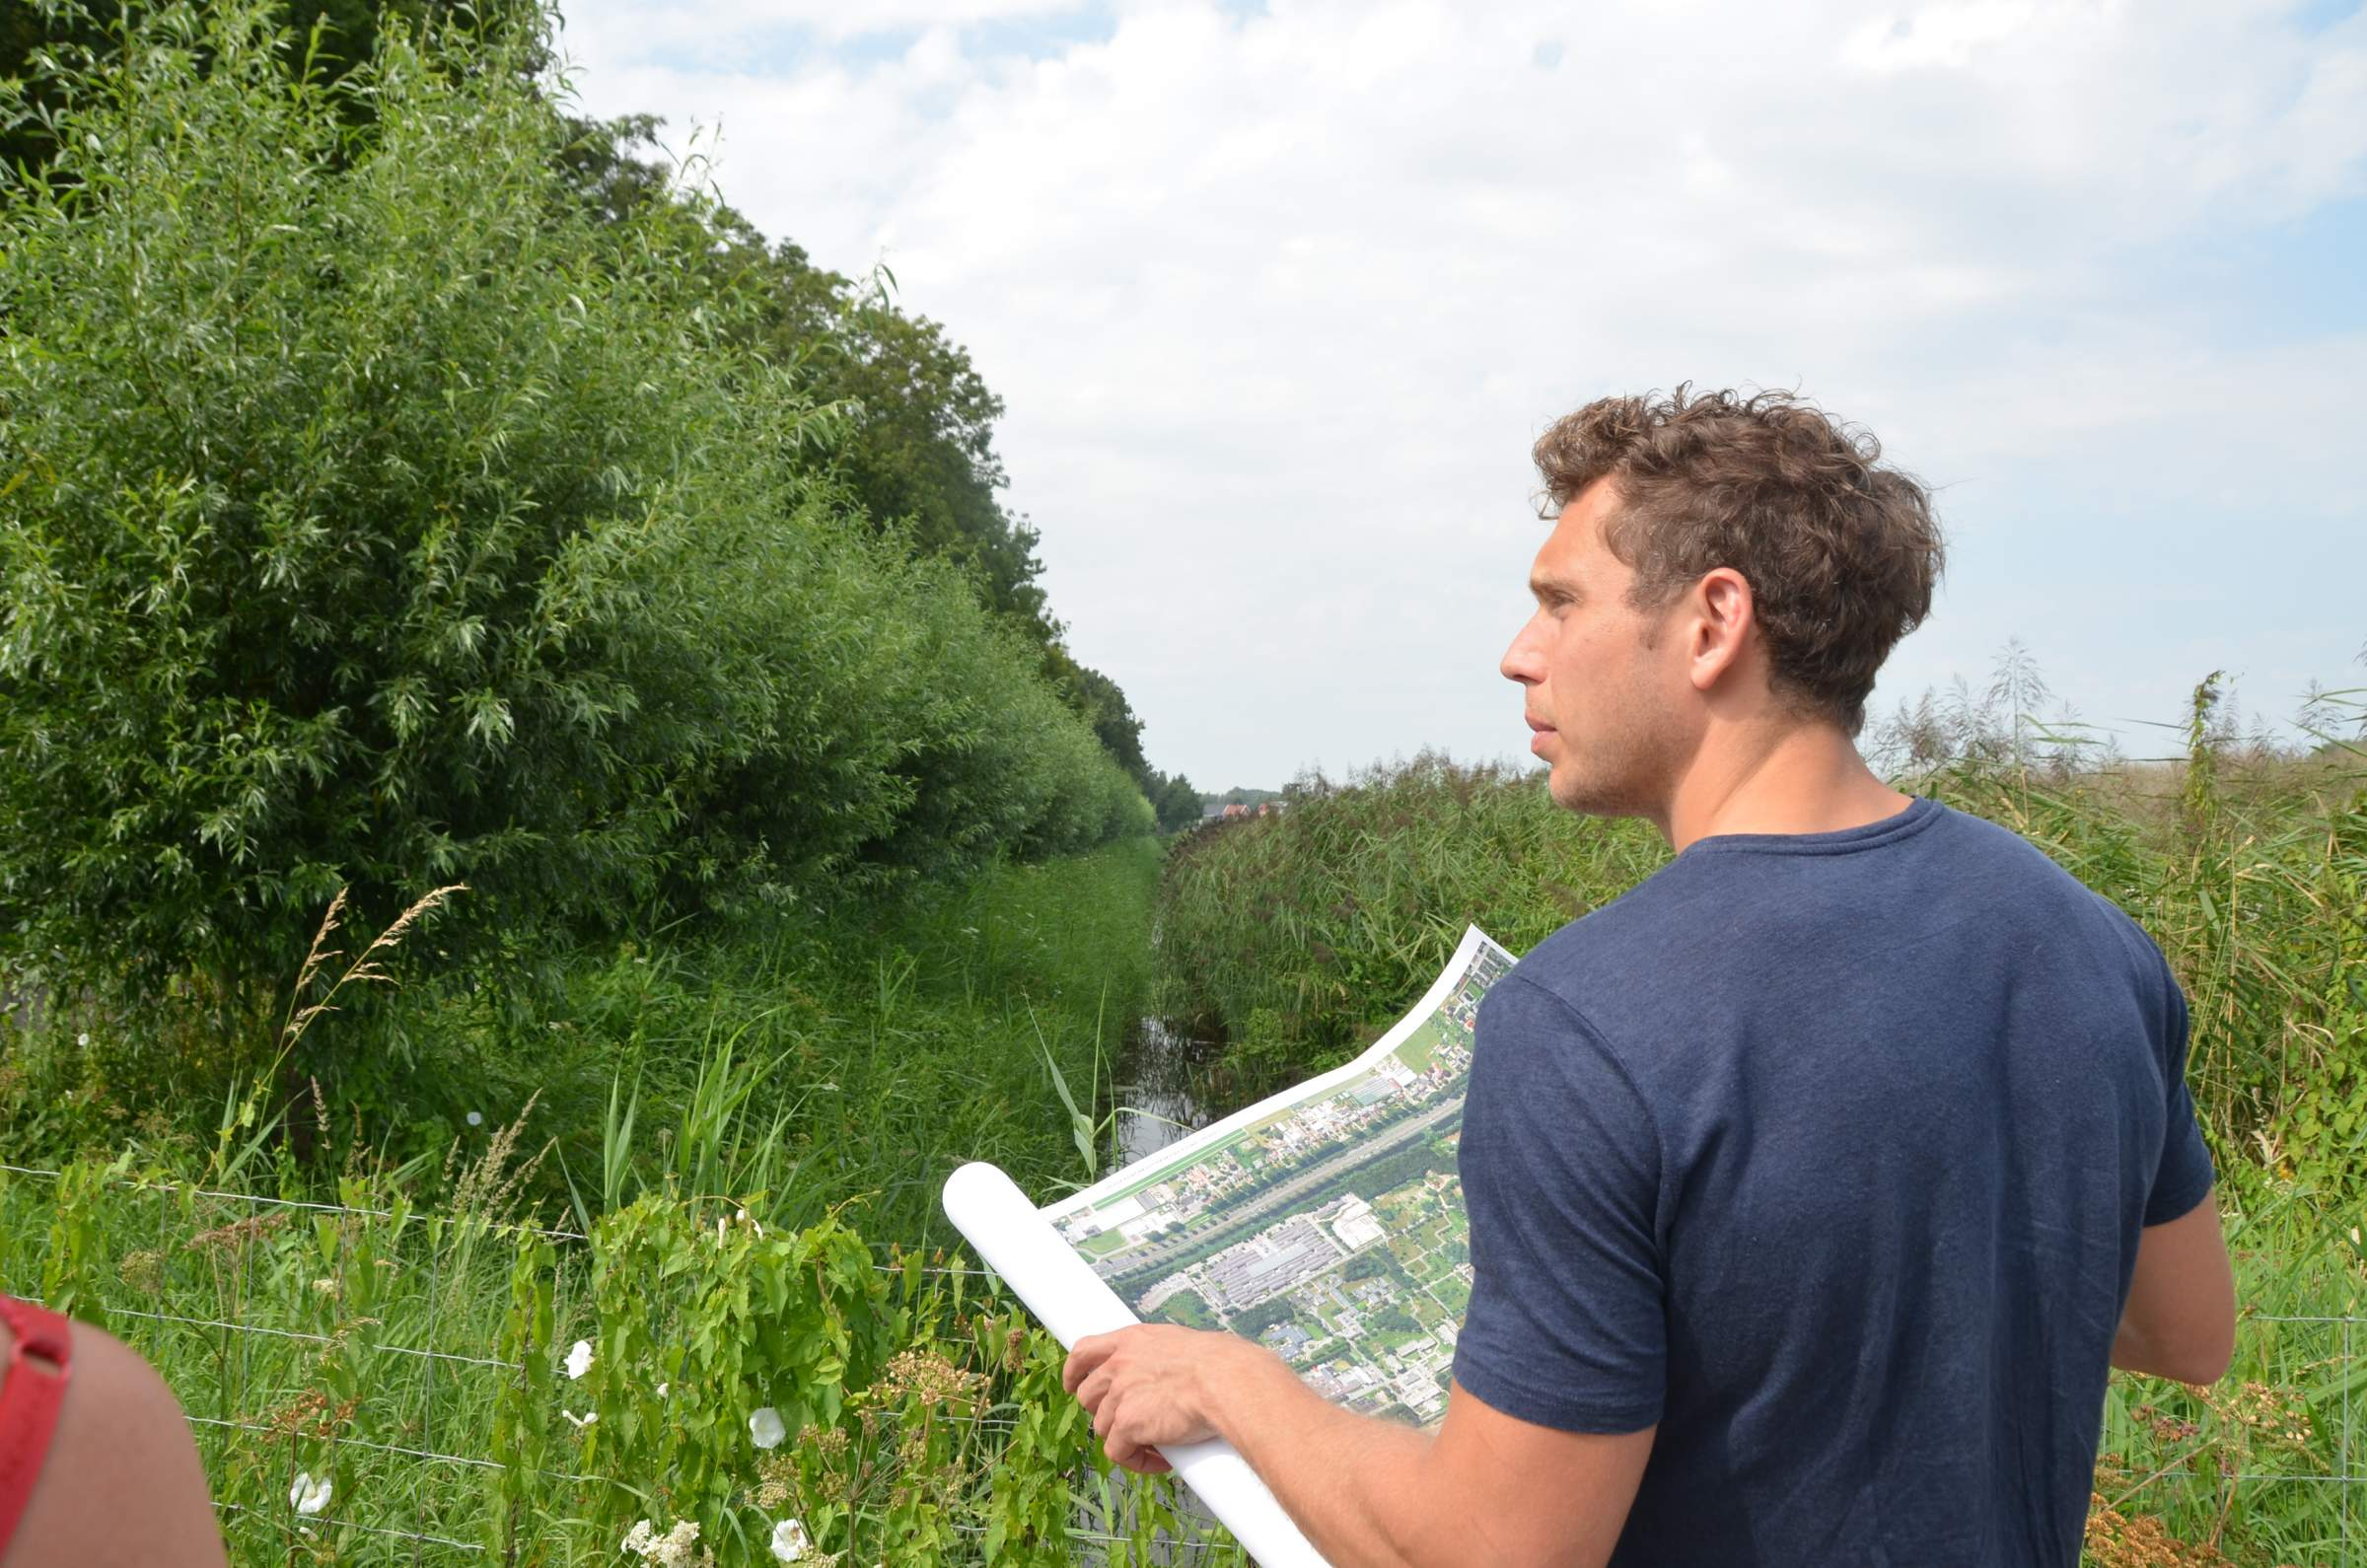 LANDLAB's Luc Joosten checking trees in Wickevoort